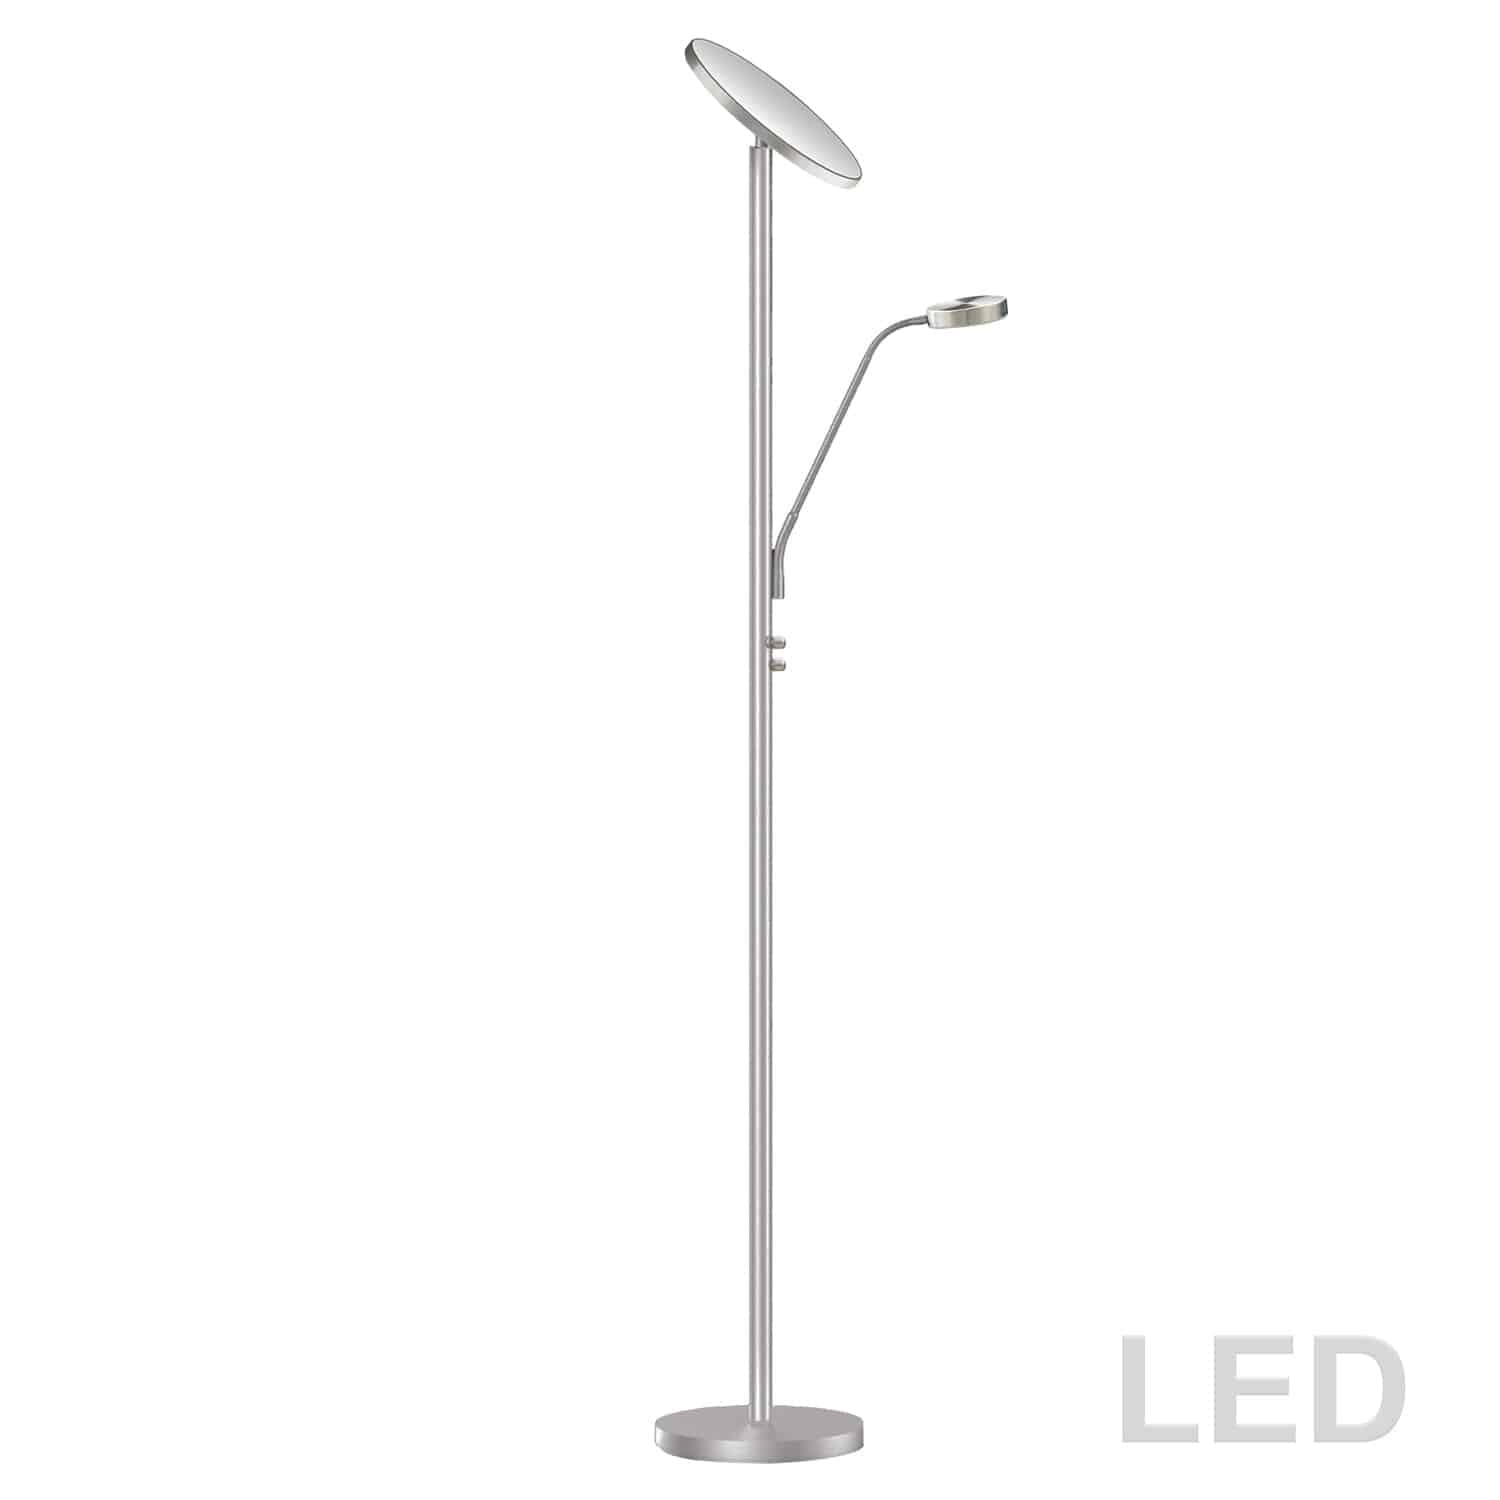 Mother and Son LED Floor Lamp, Satin Nickel Finish